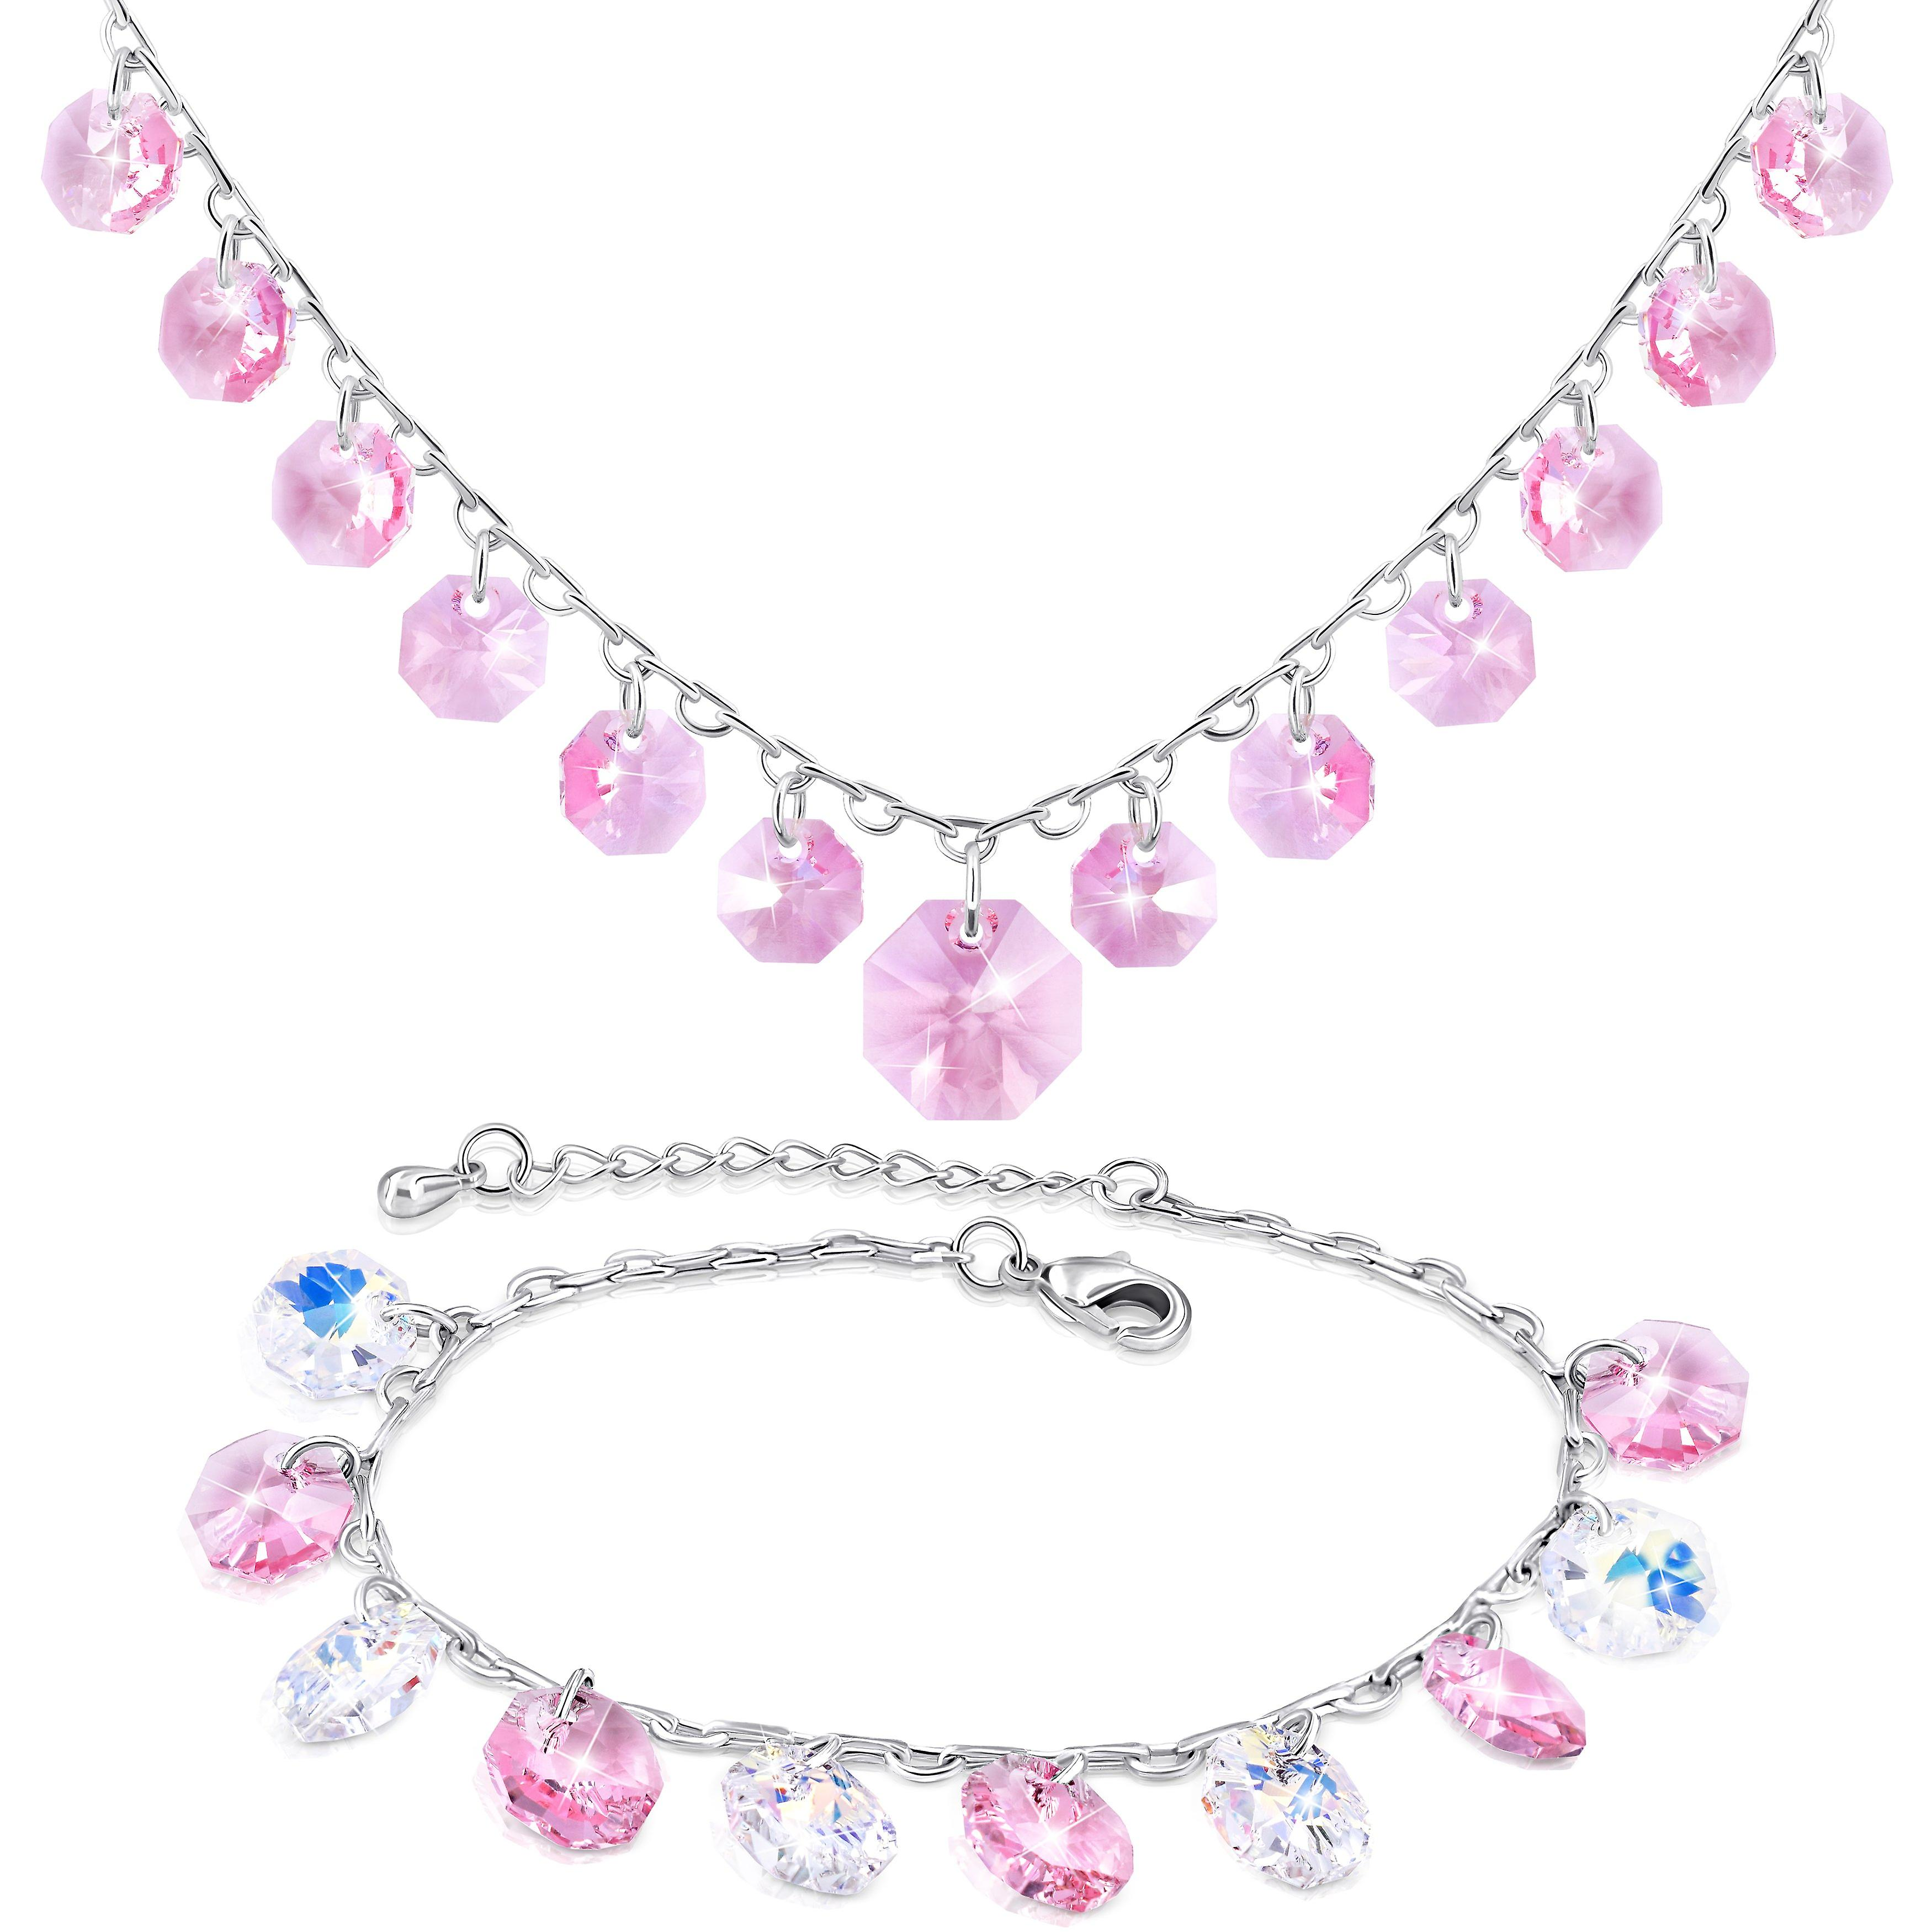 Jewellery set bracelet and necklace with swarovski crystal. rhodium plated. by 2splendid. gift box included. bnqz013